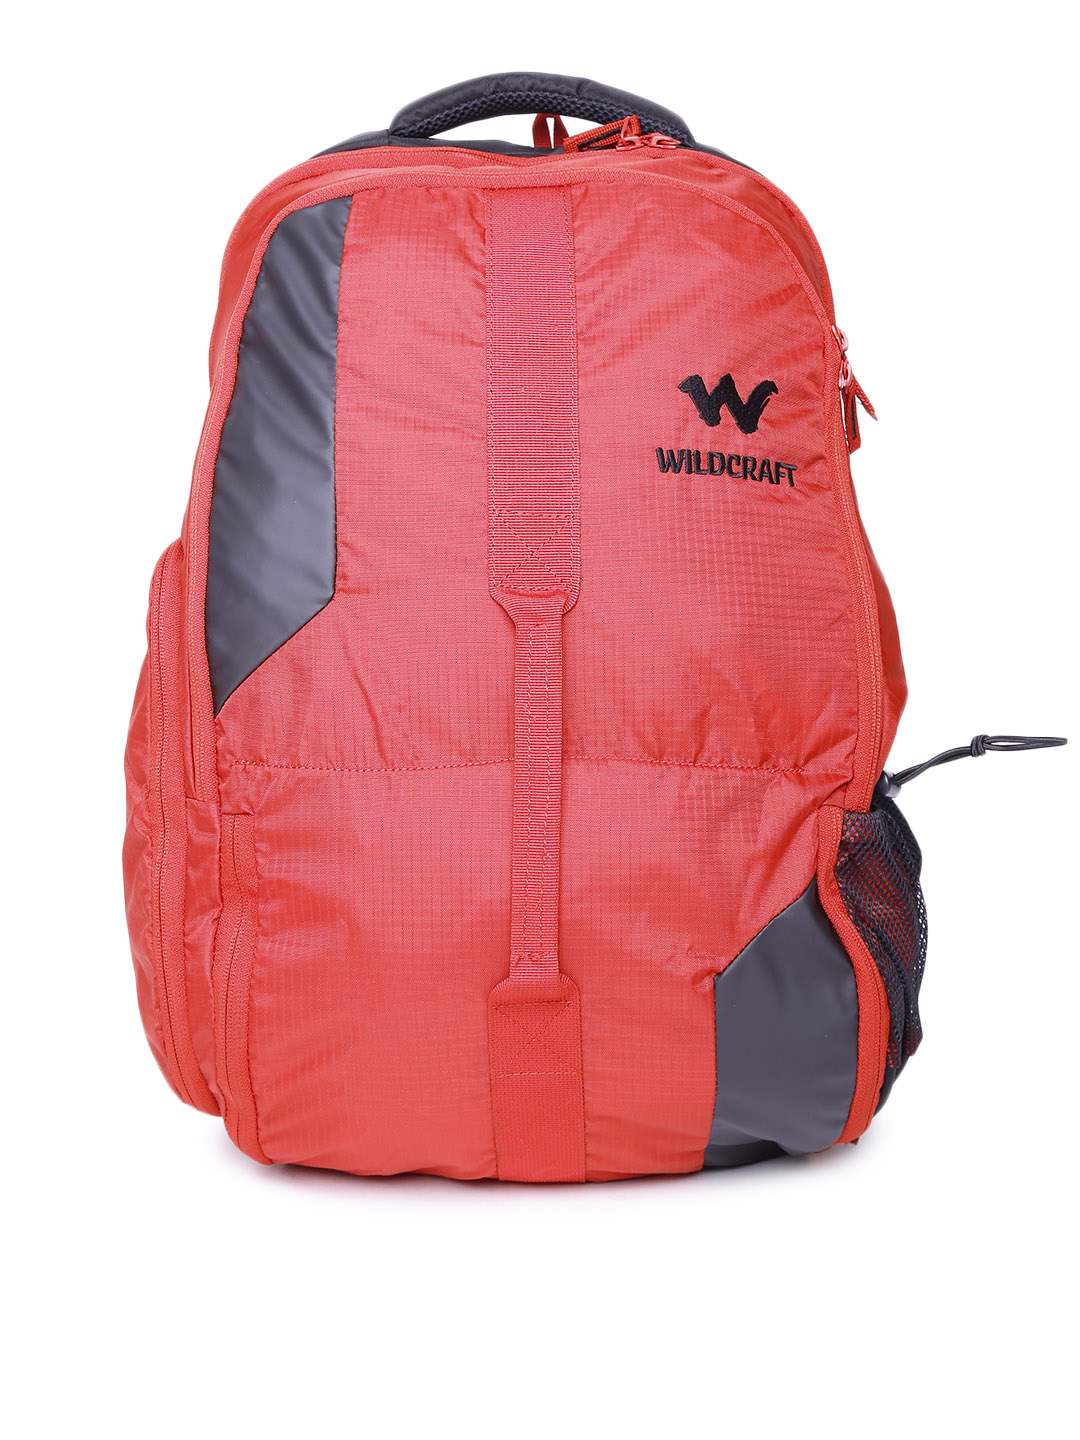 Wildcraft Unisex Red Geek 1 Solid Backpack